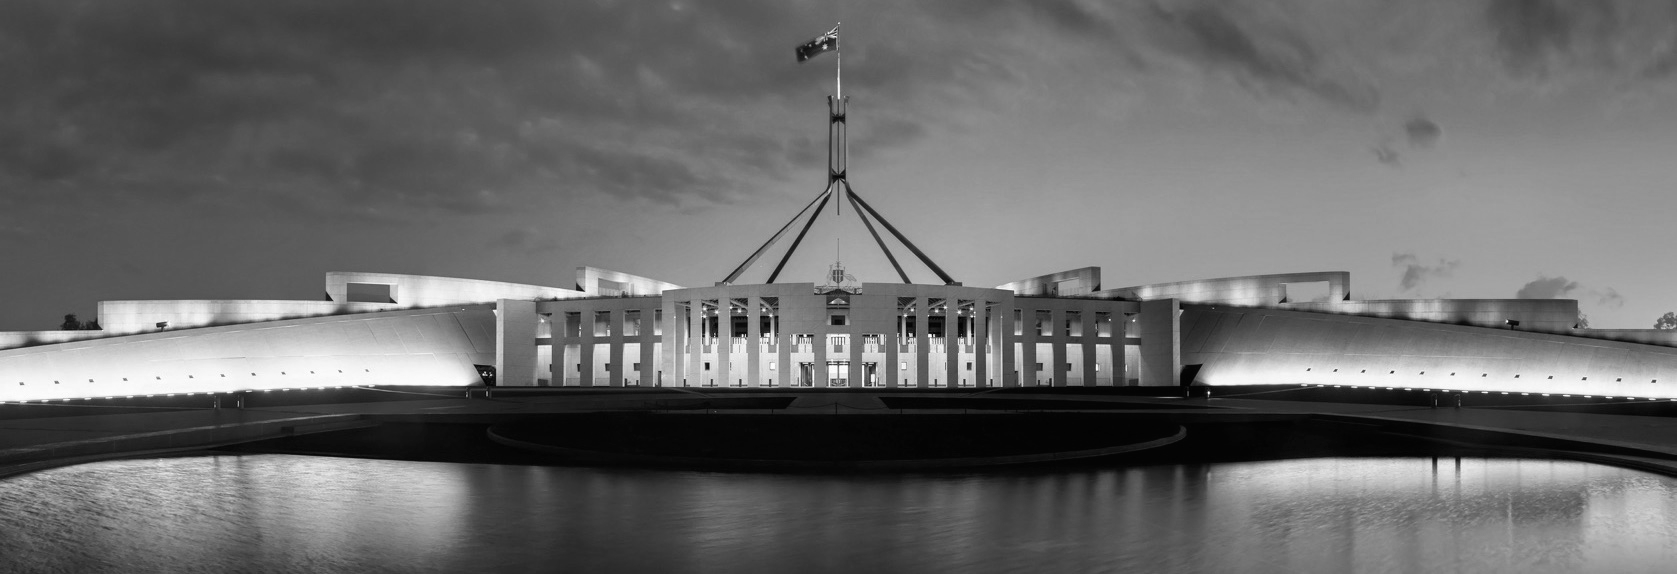 Parliament_House_Slider